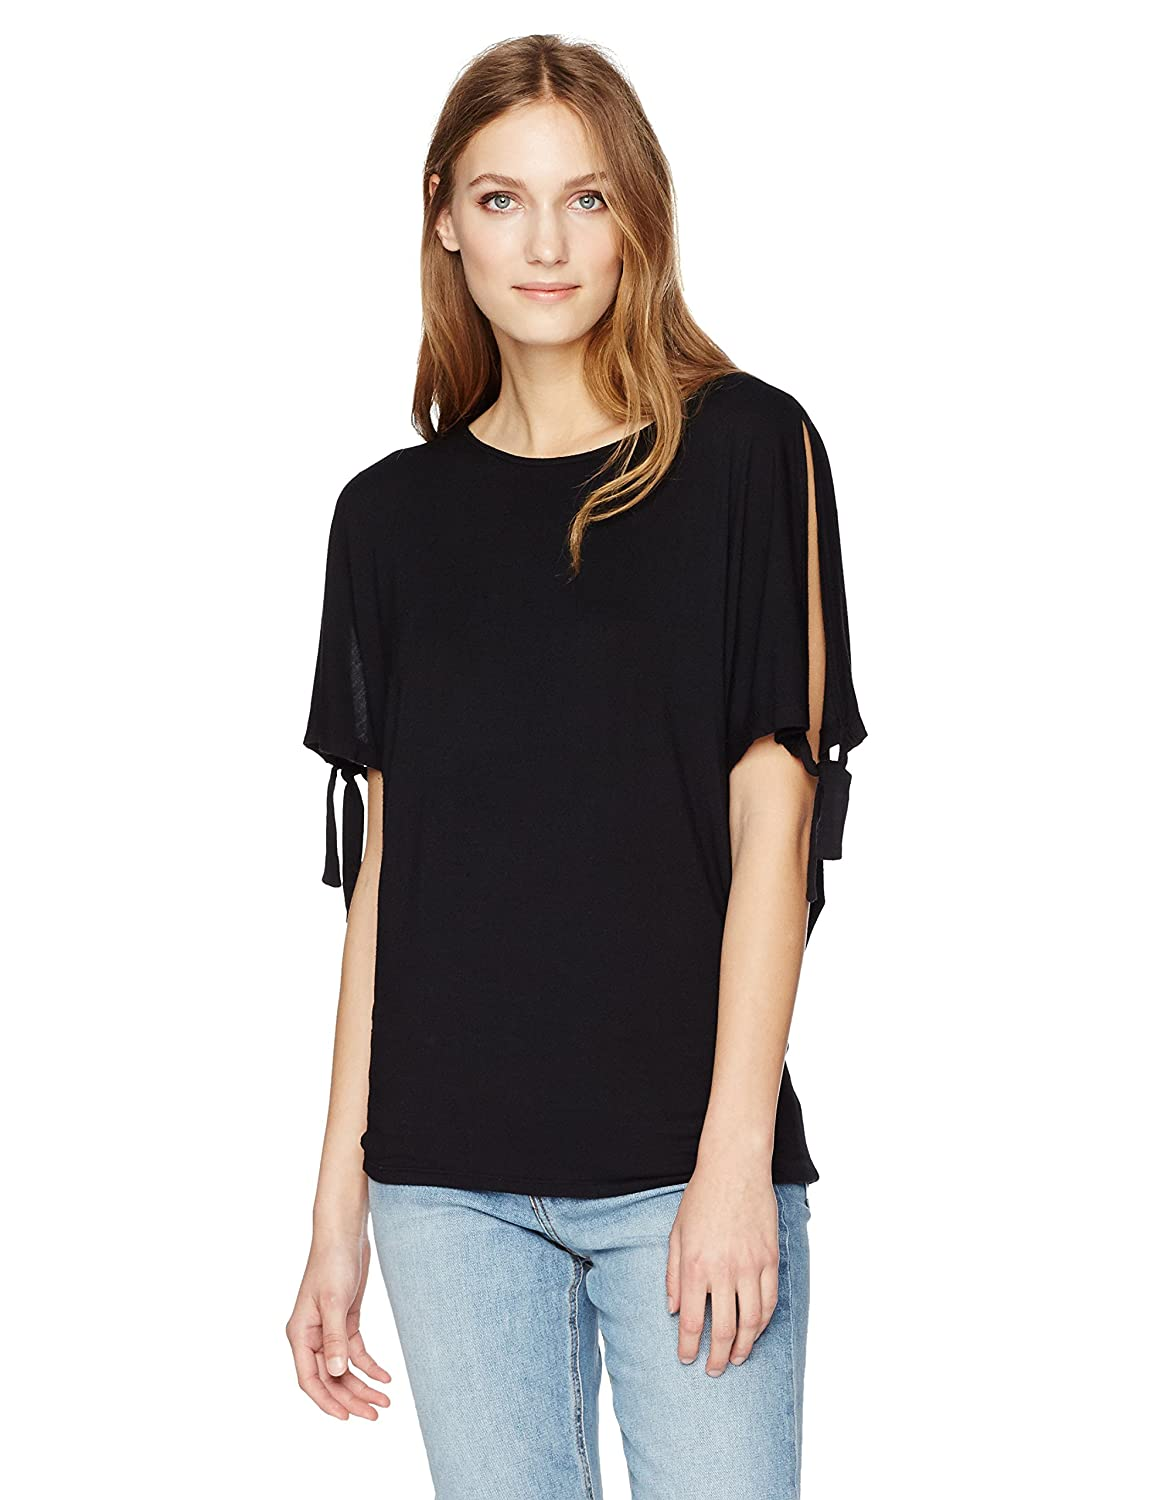 Black Velvet Womens Modal Knit Tie Sleeve Top TShirt